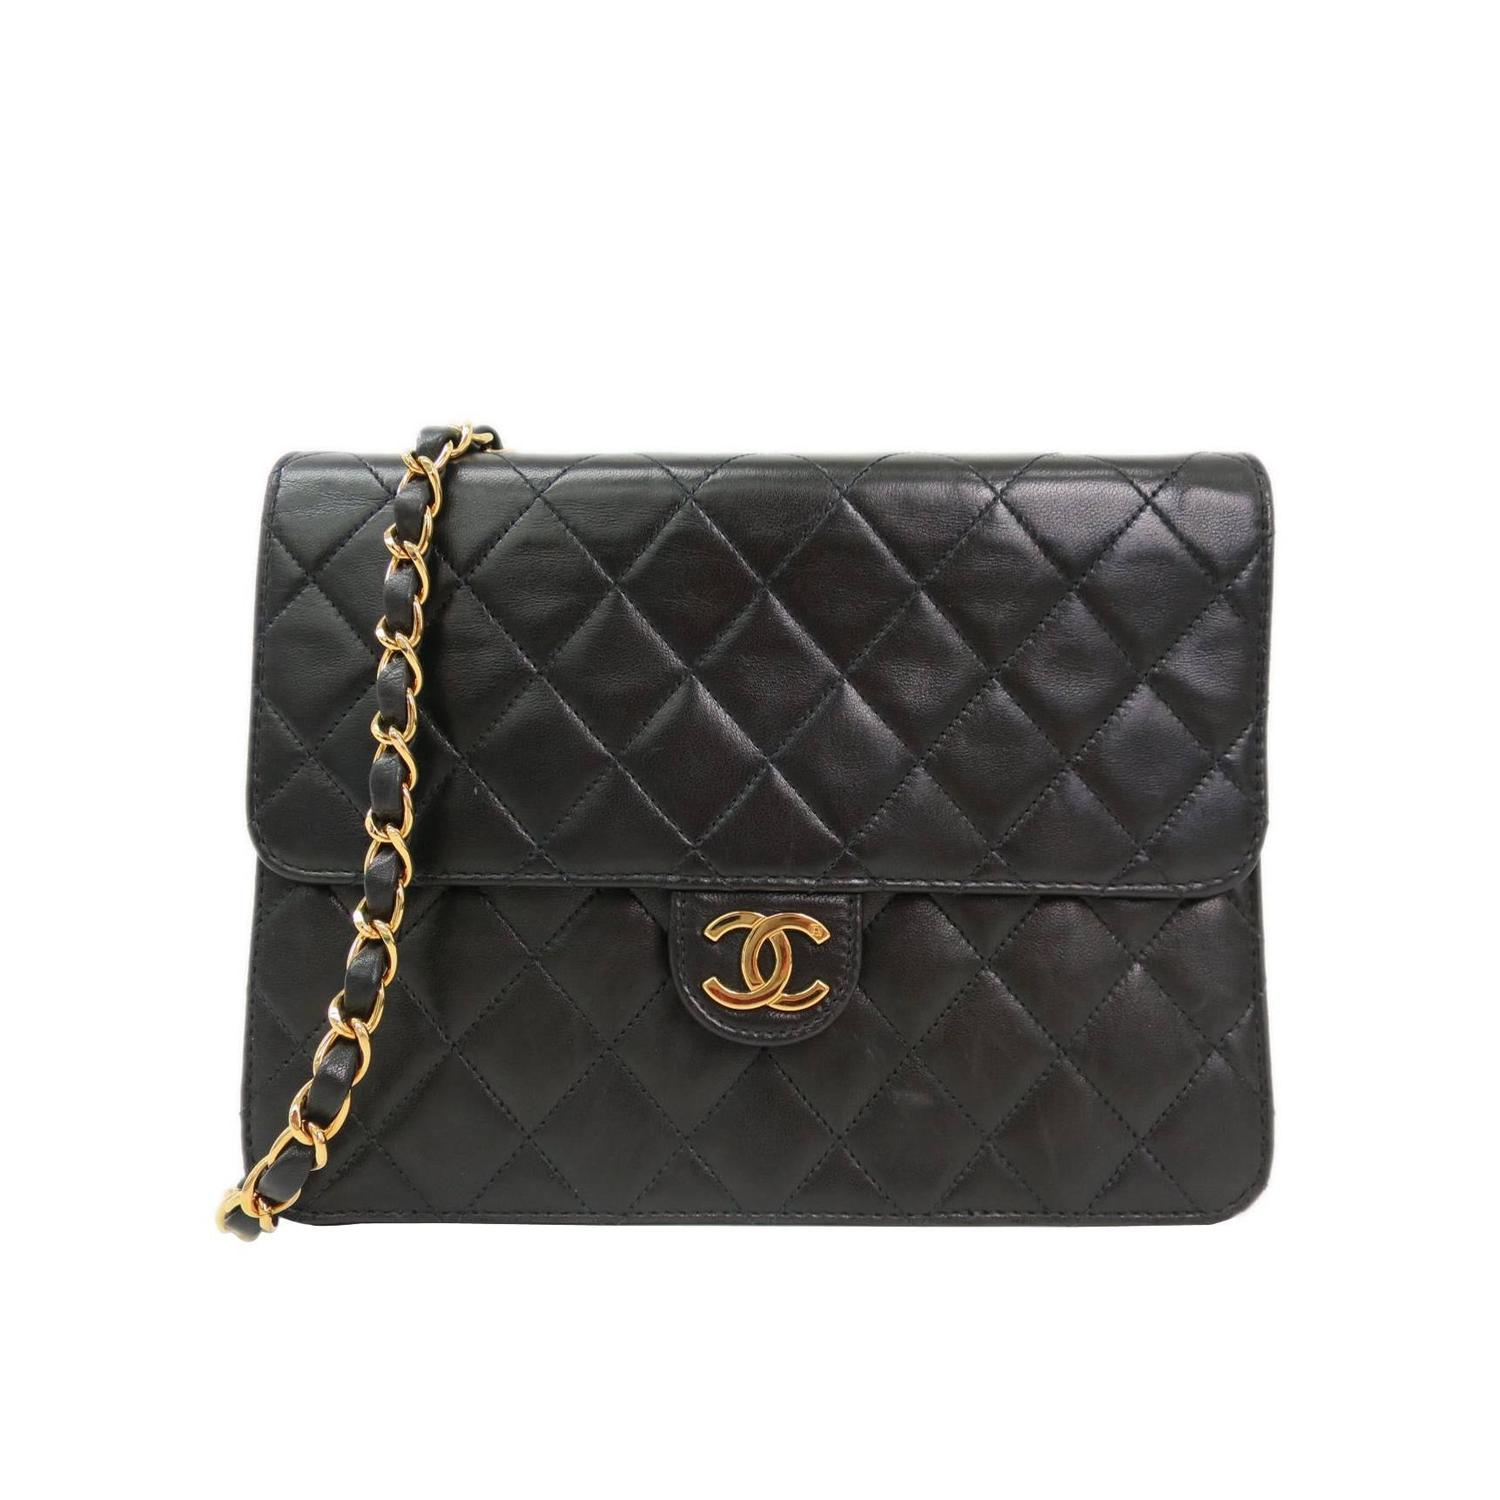 00b4954ac09e Chanel Vintage Black Quilted Leather Shoulder Bag | Stanford Center ...